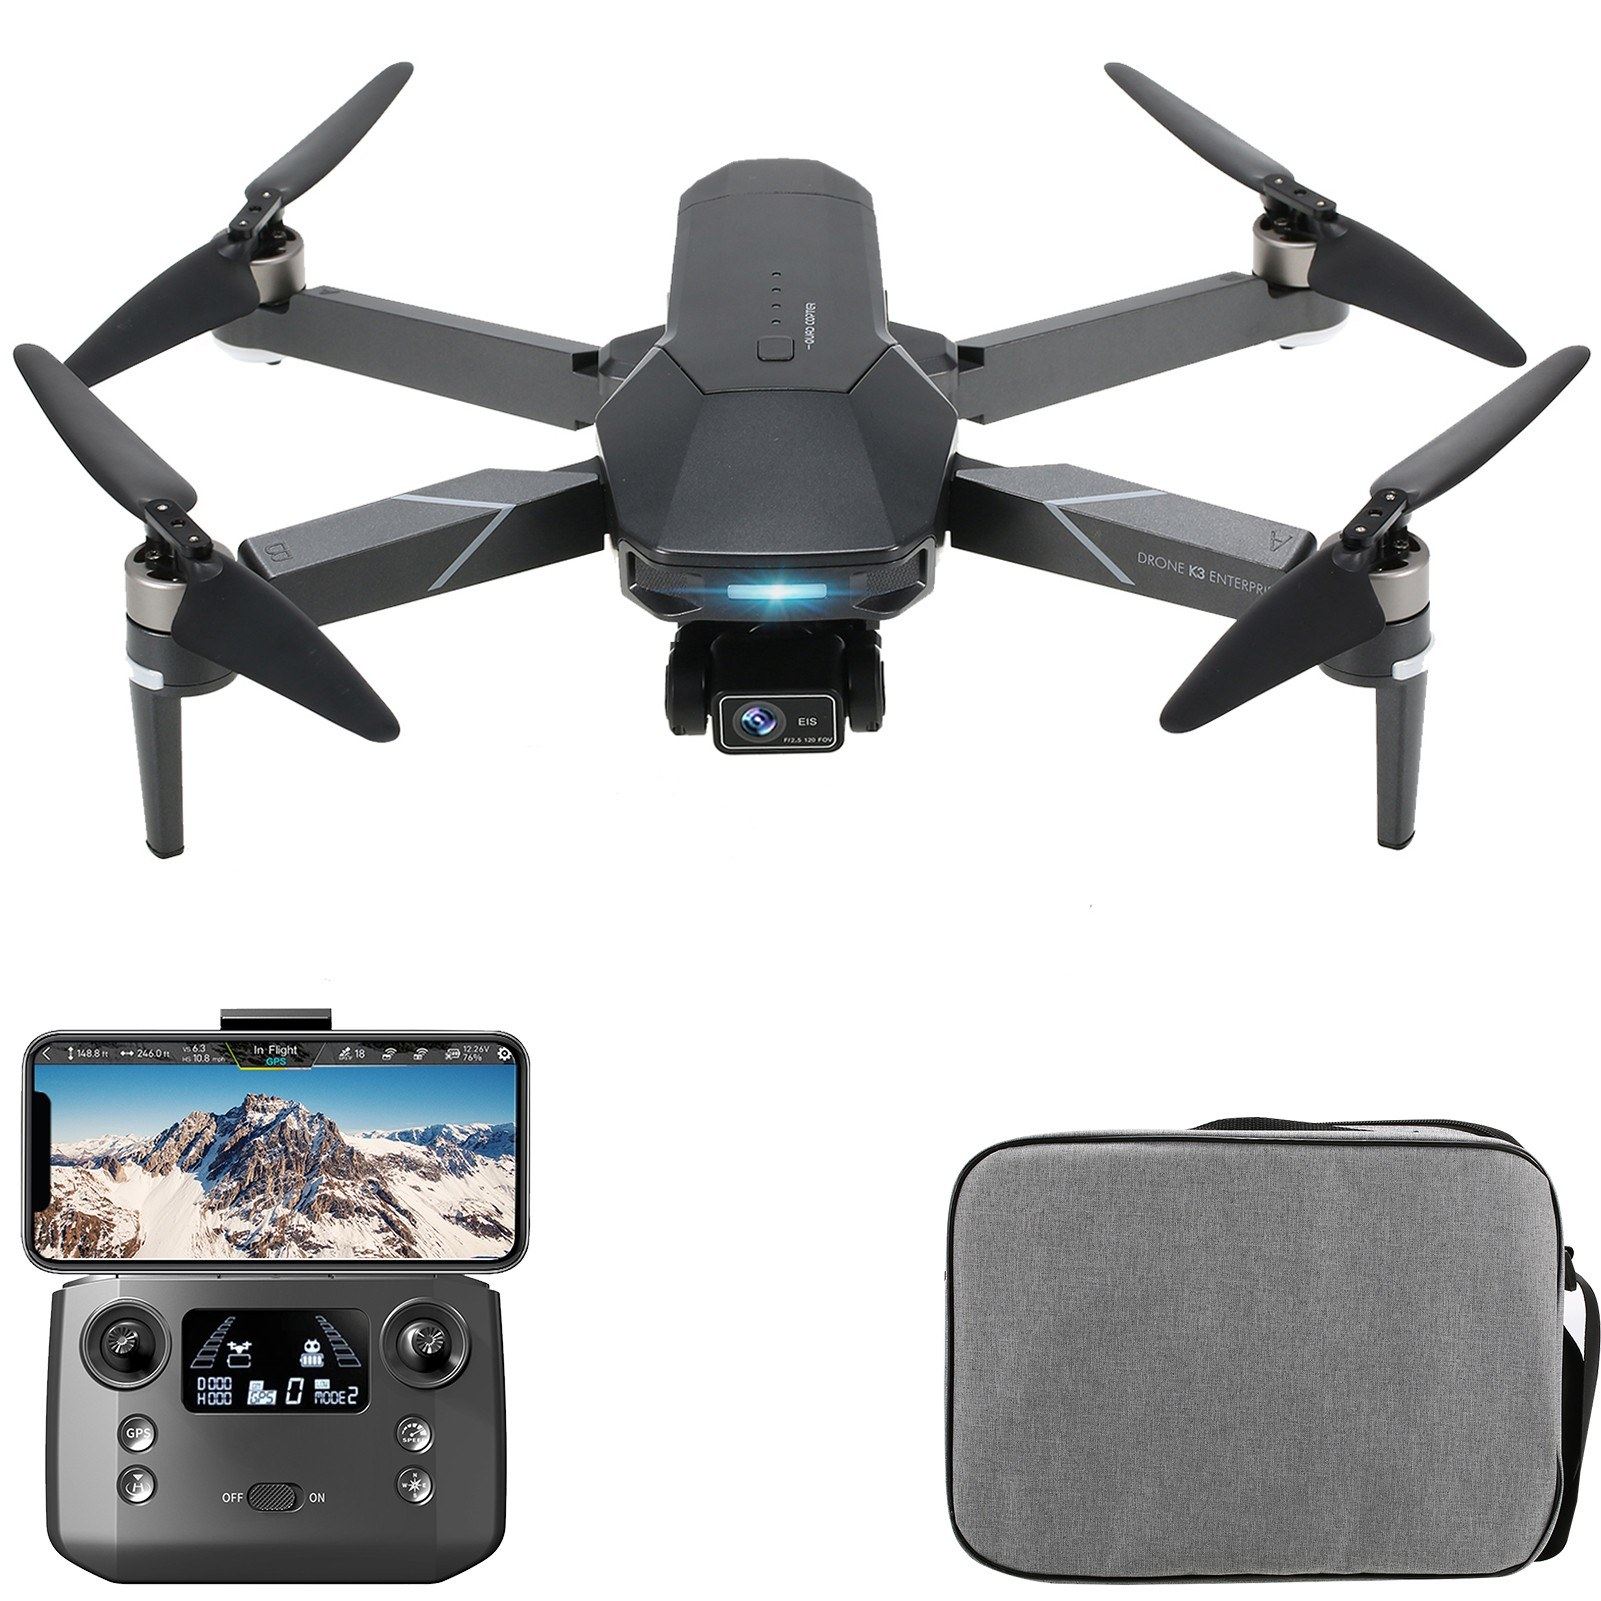 Tomtop - 49% OFF VISUO K3 5G Wifi FPV GPS EIS 2.7K Camera RC Drone, Free Shipping $197.99